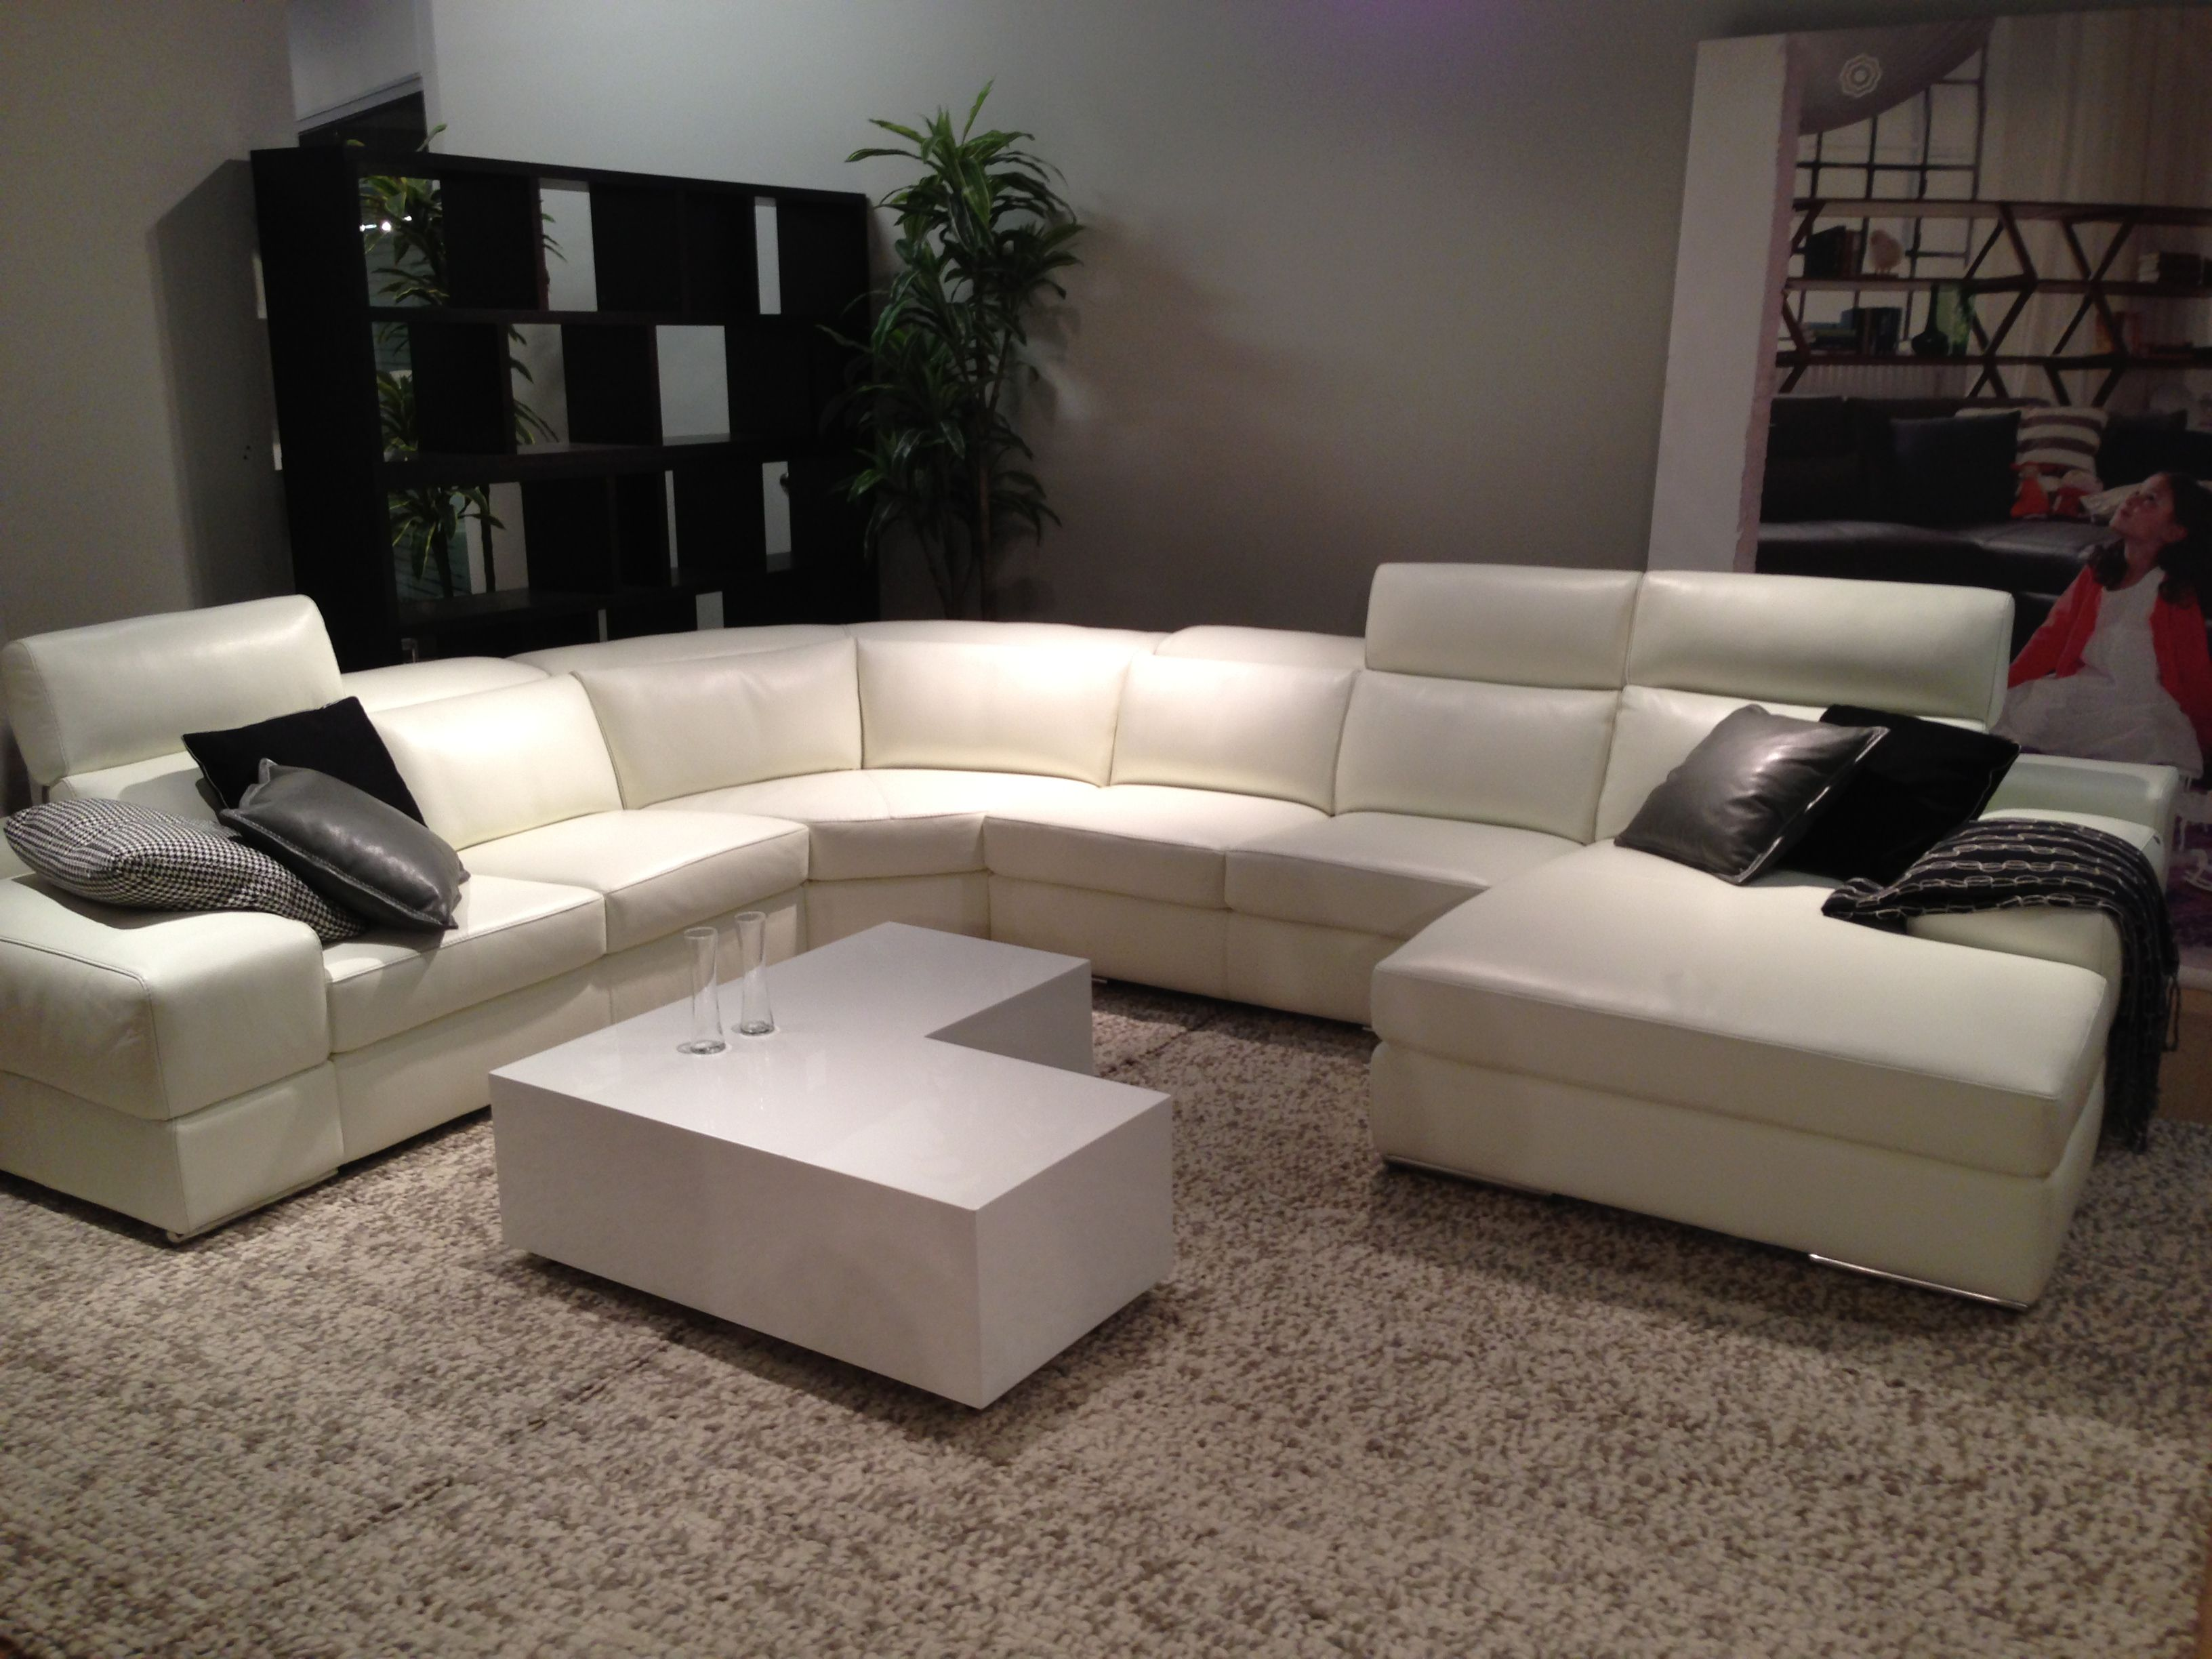 modern-white-leather-sectional-htl-portland-oregon.jpg 1632 : sectional sofas portland oregon - Sectionals, Sofas & Couches